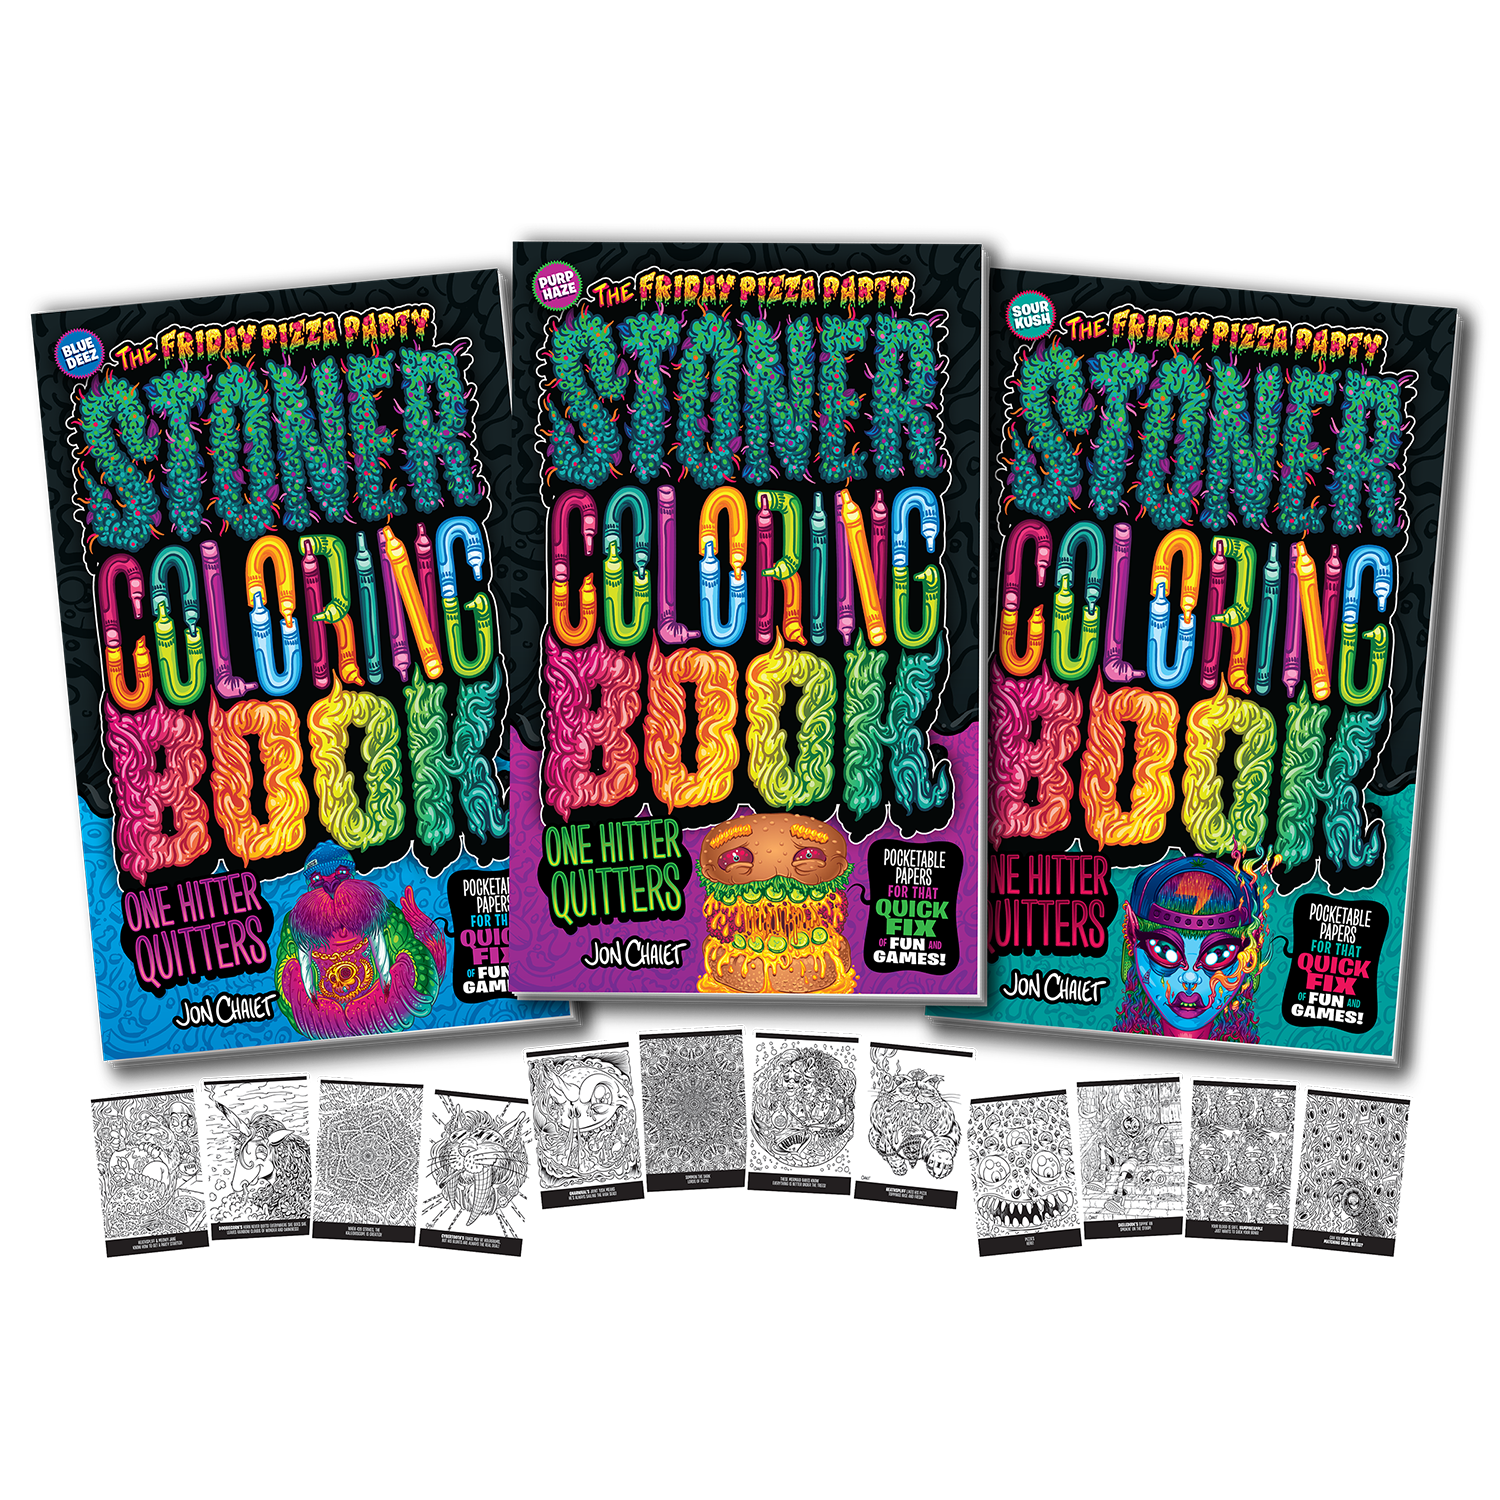 - FPP Stoner Coloring Book One Hitter Quitters — FRIDAY PIZZA PARTY